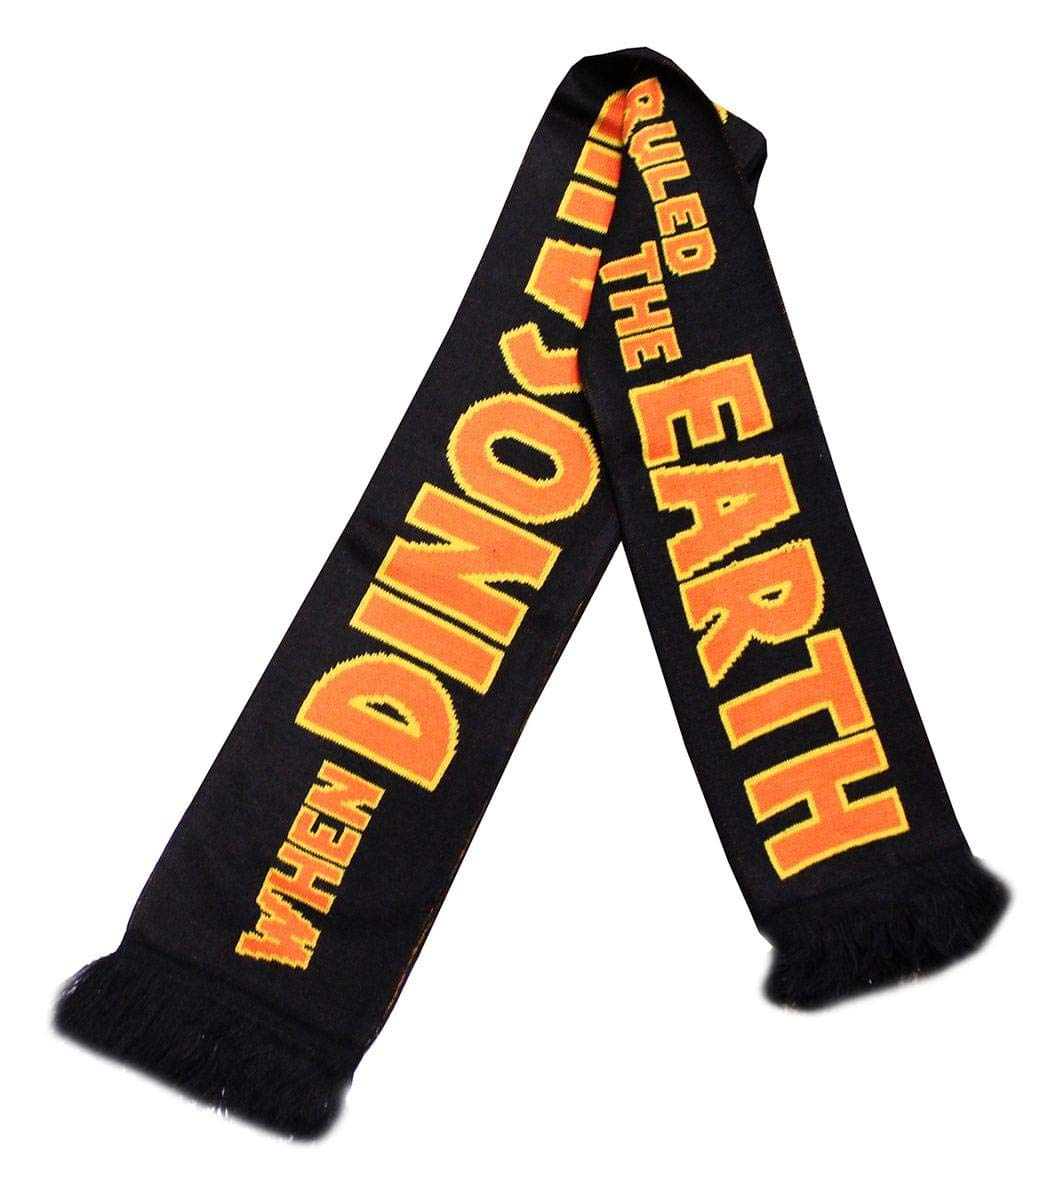 """Jurassic Park 5' Knitted Scarf  """"When Dinosaurs Ruled The Earth""""   Movie Memorabilia And Merchandise   Large Premium Quality Unisex Scarves   Geeky Gifts Perfect For Birthdays, Costumes, Holidays"""